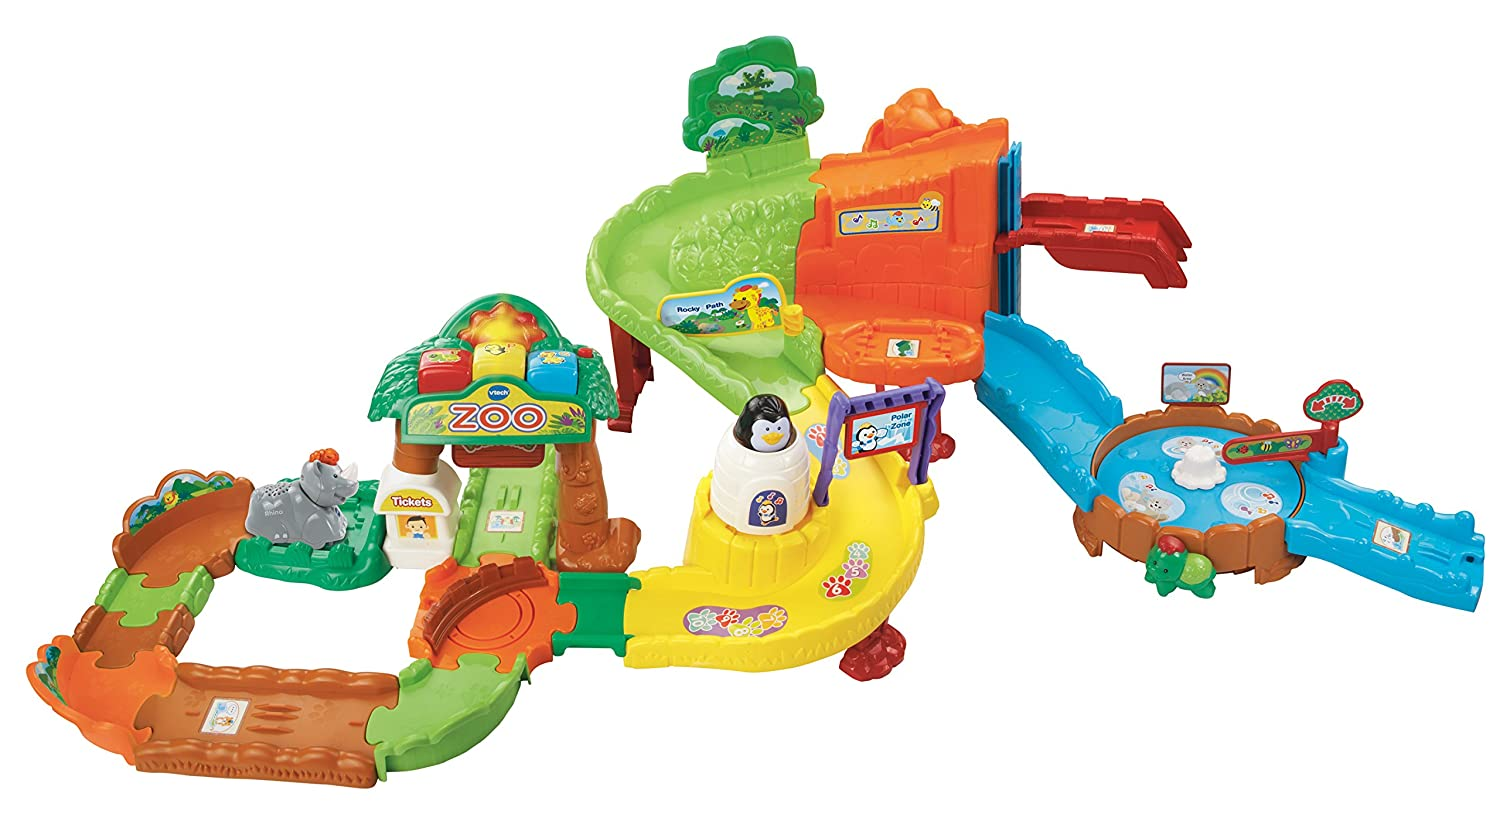 Vtech Go Go Smart Animals Zoo Explorers Playset